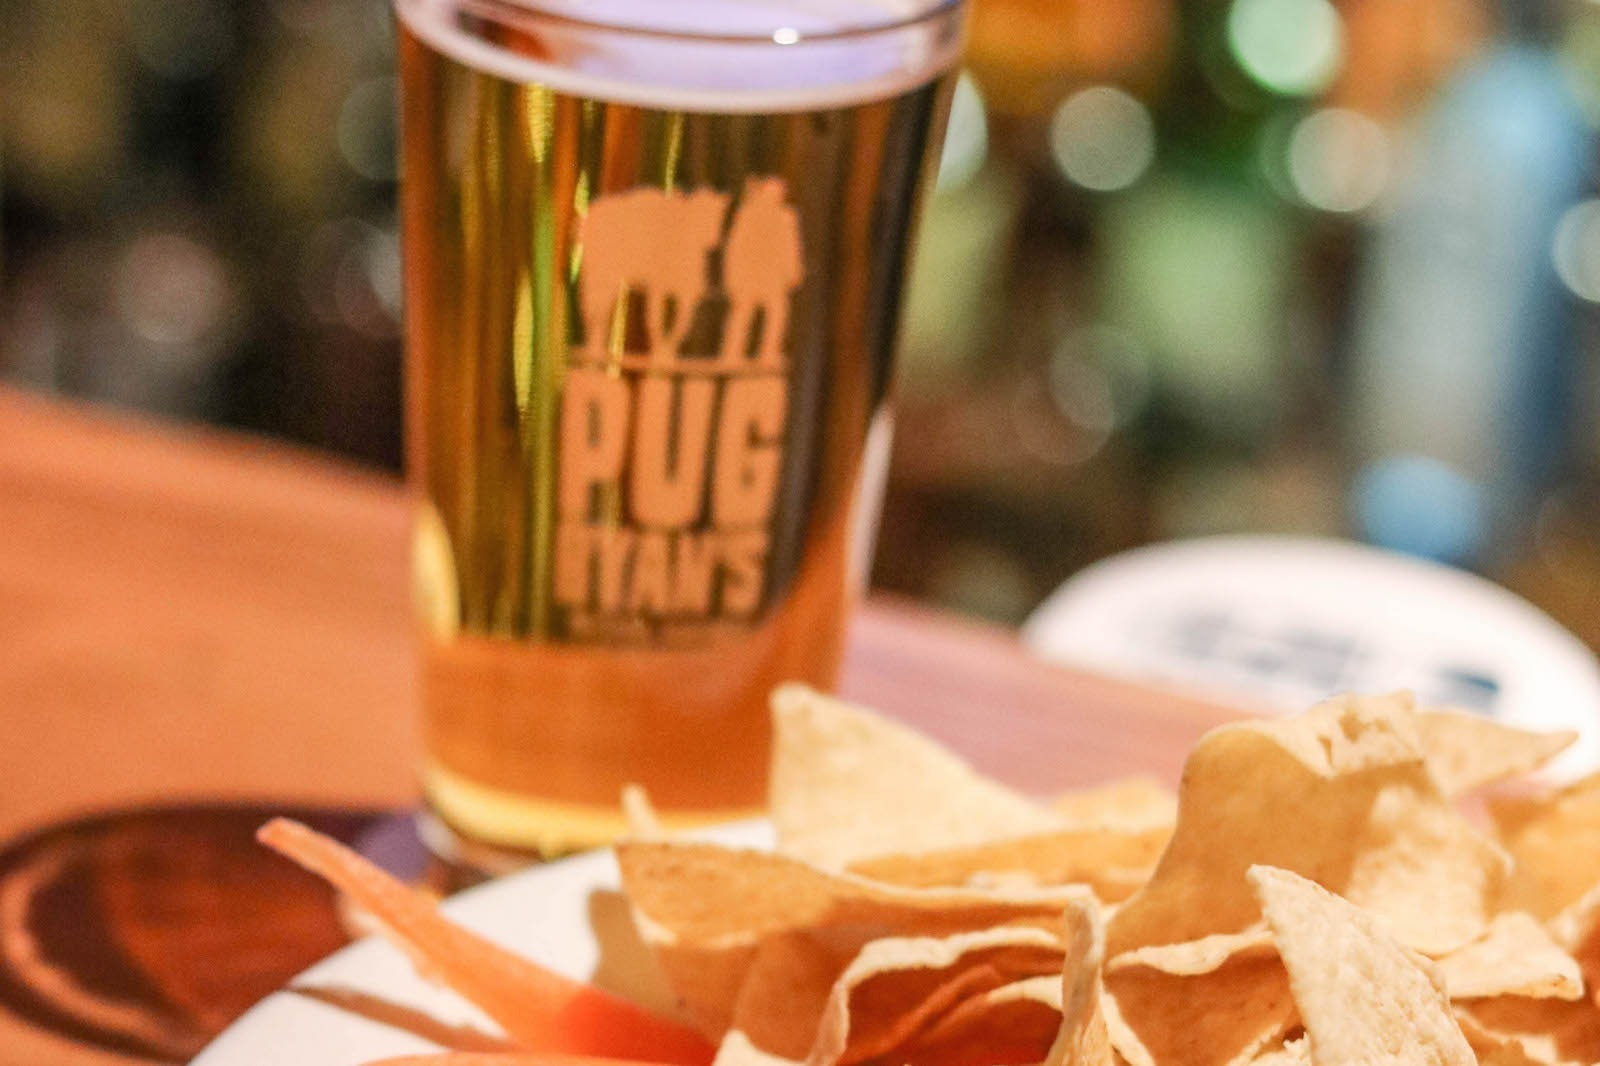 A beer and chips at a local brewery in Dillon, Colorado